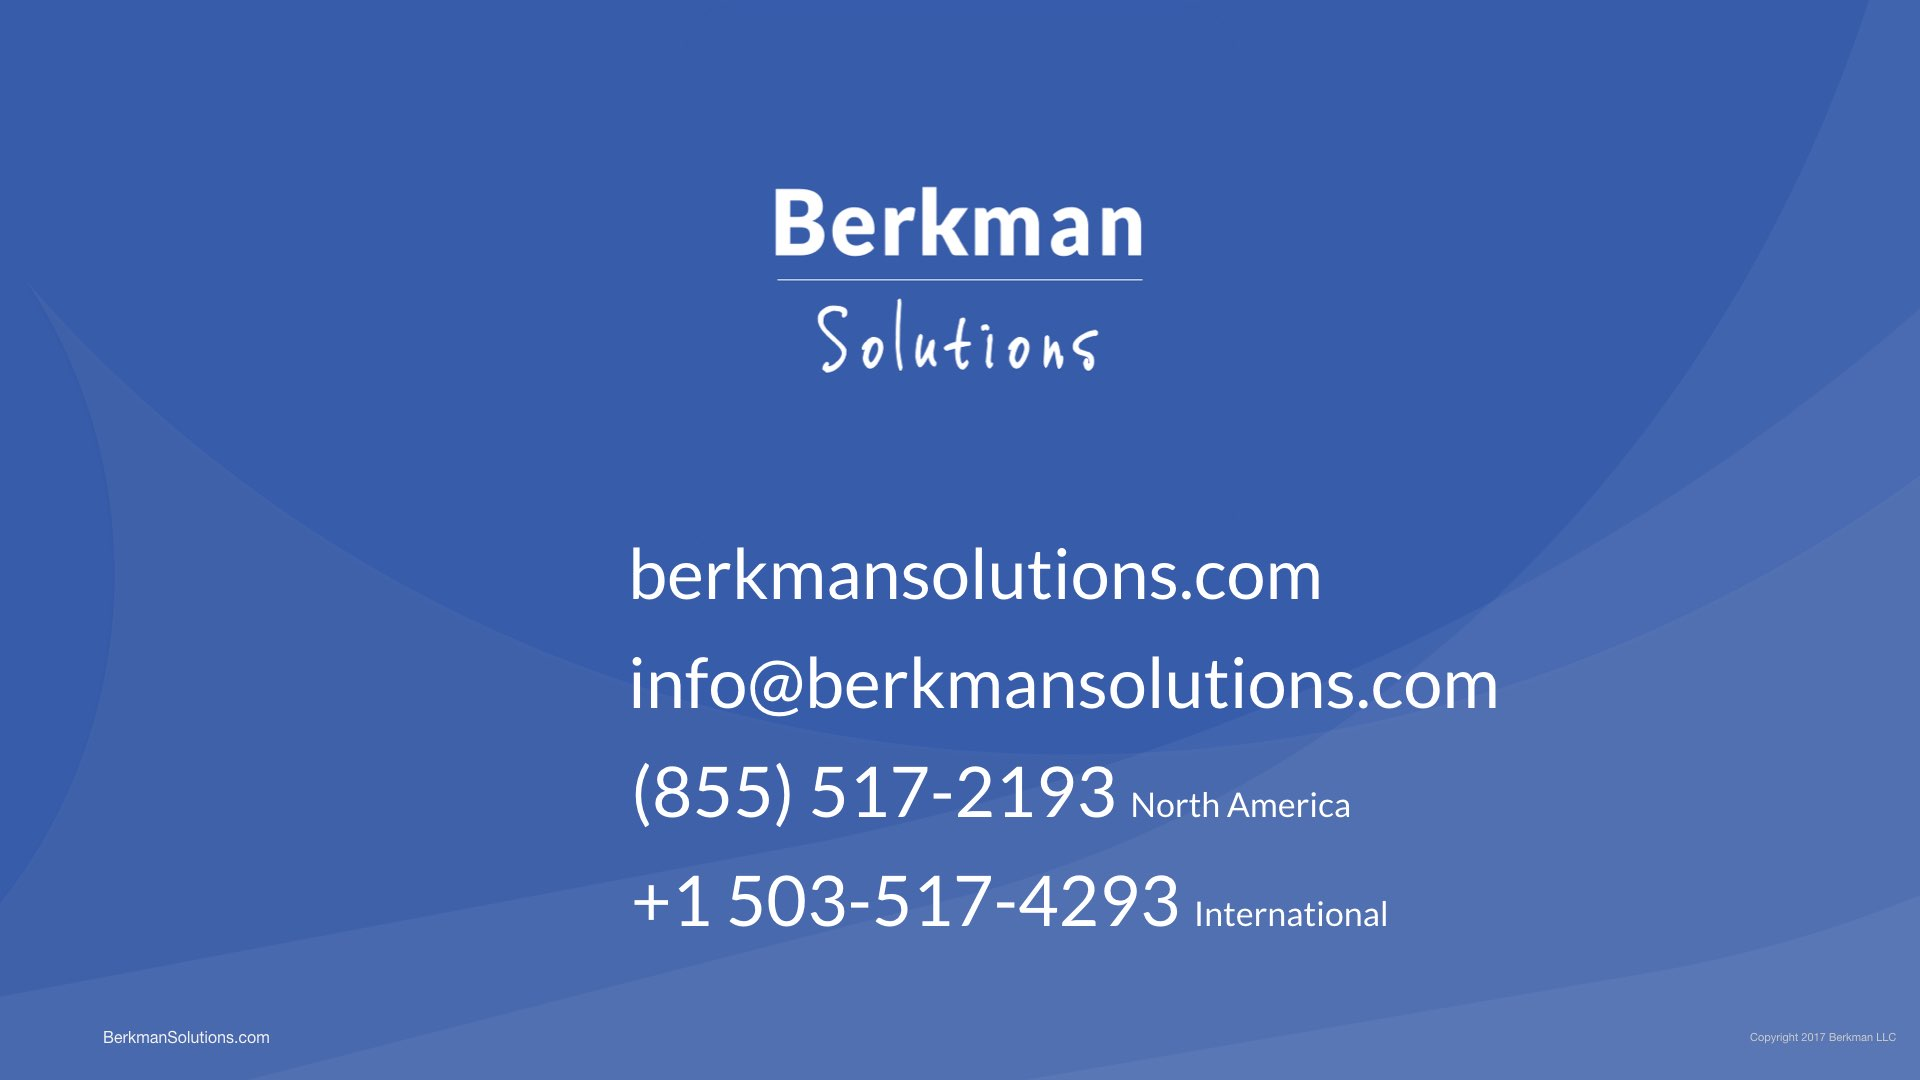 Contact Berkman Solutions about Lextree